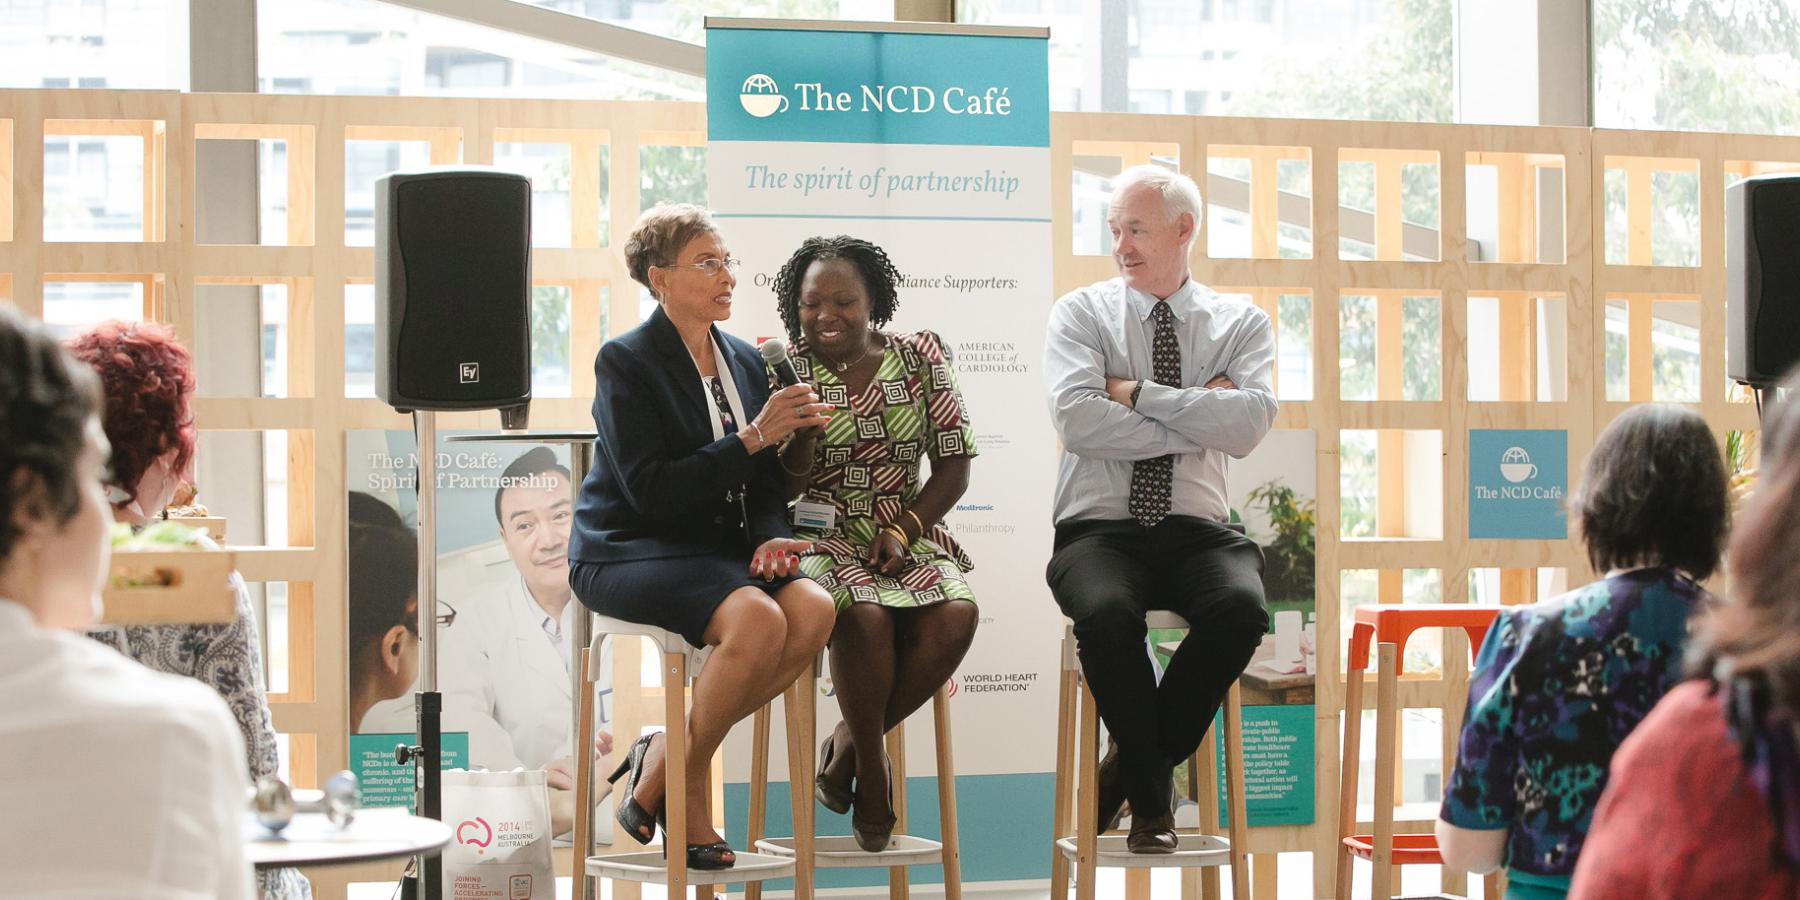 The NCD Cafe, 2015 World Cancer Congress